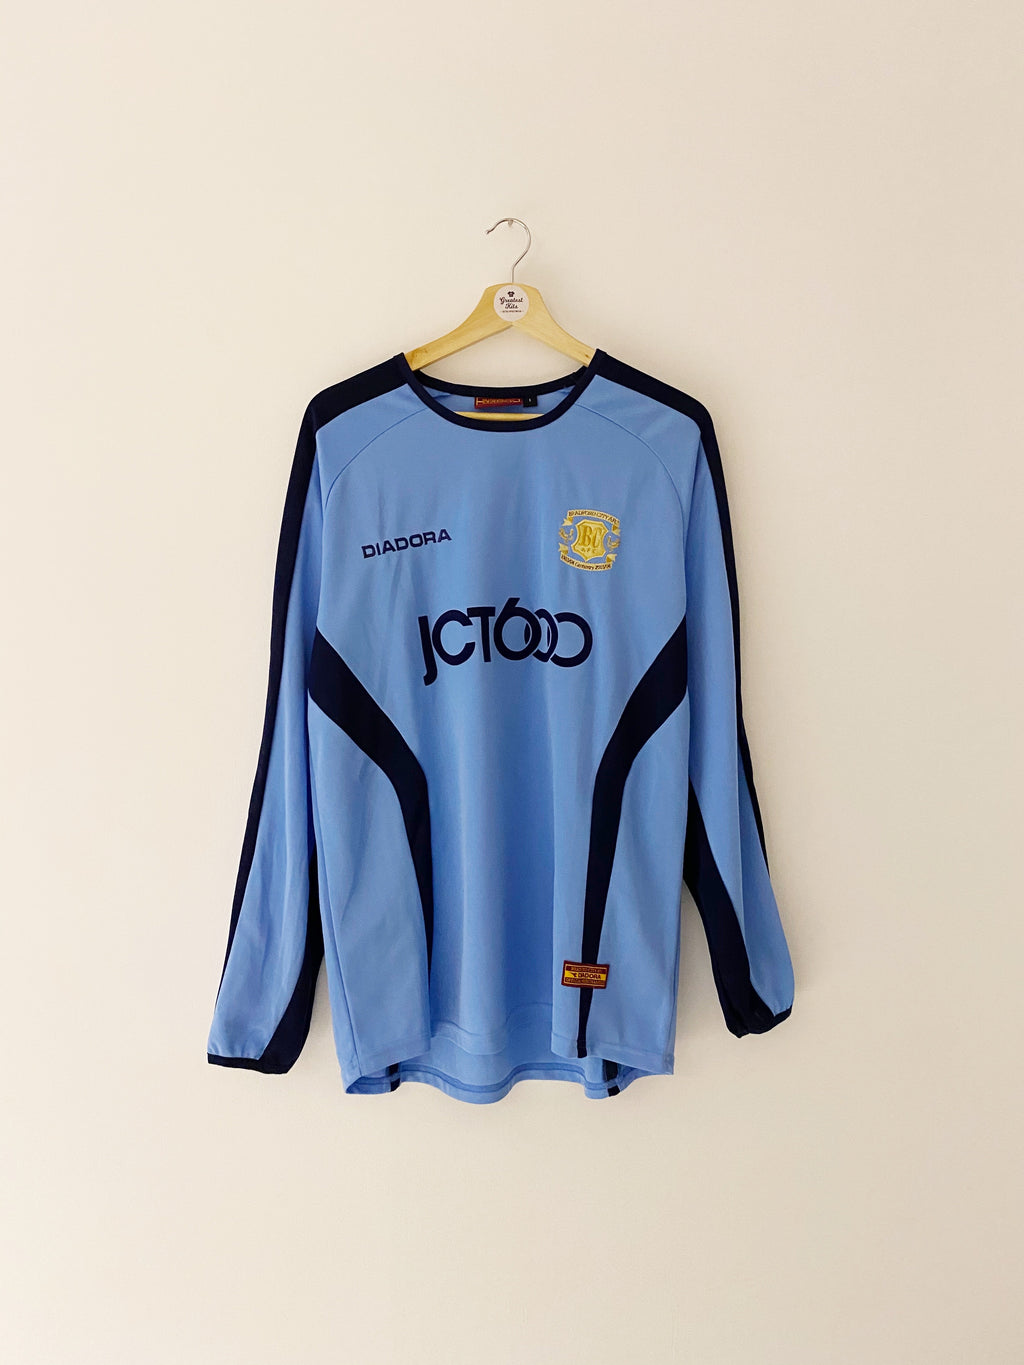 2003/04 Bradford City Away Centenary L/S Shirt (S) 9/10